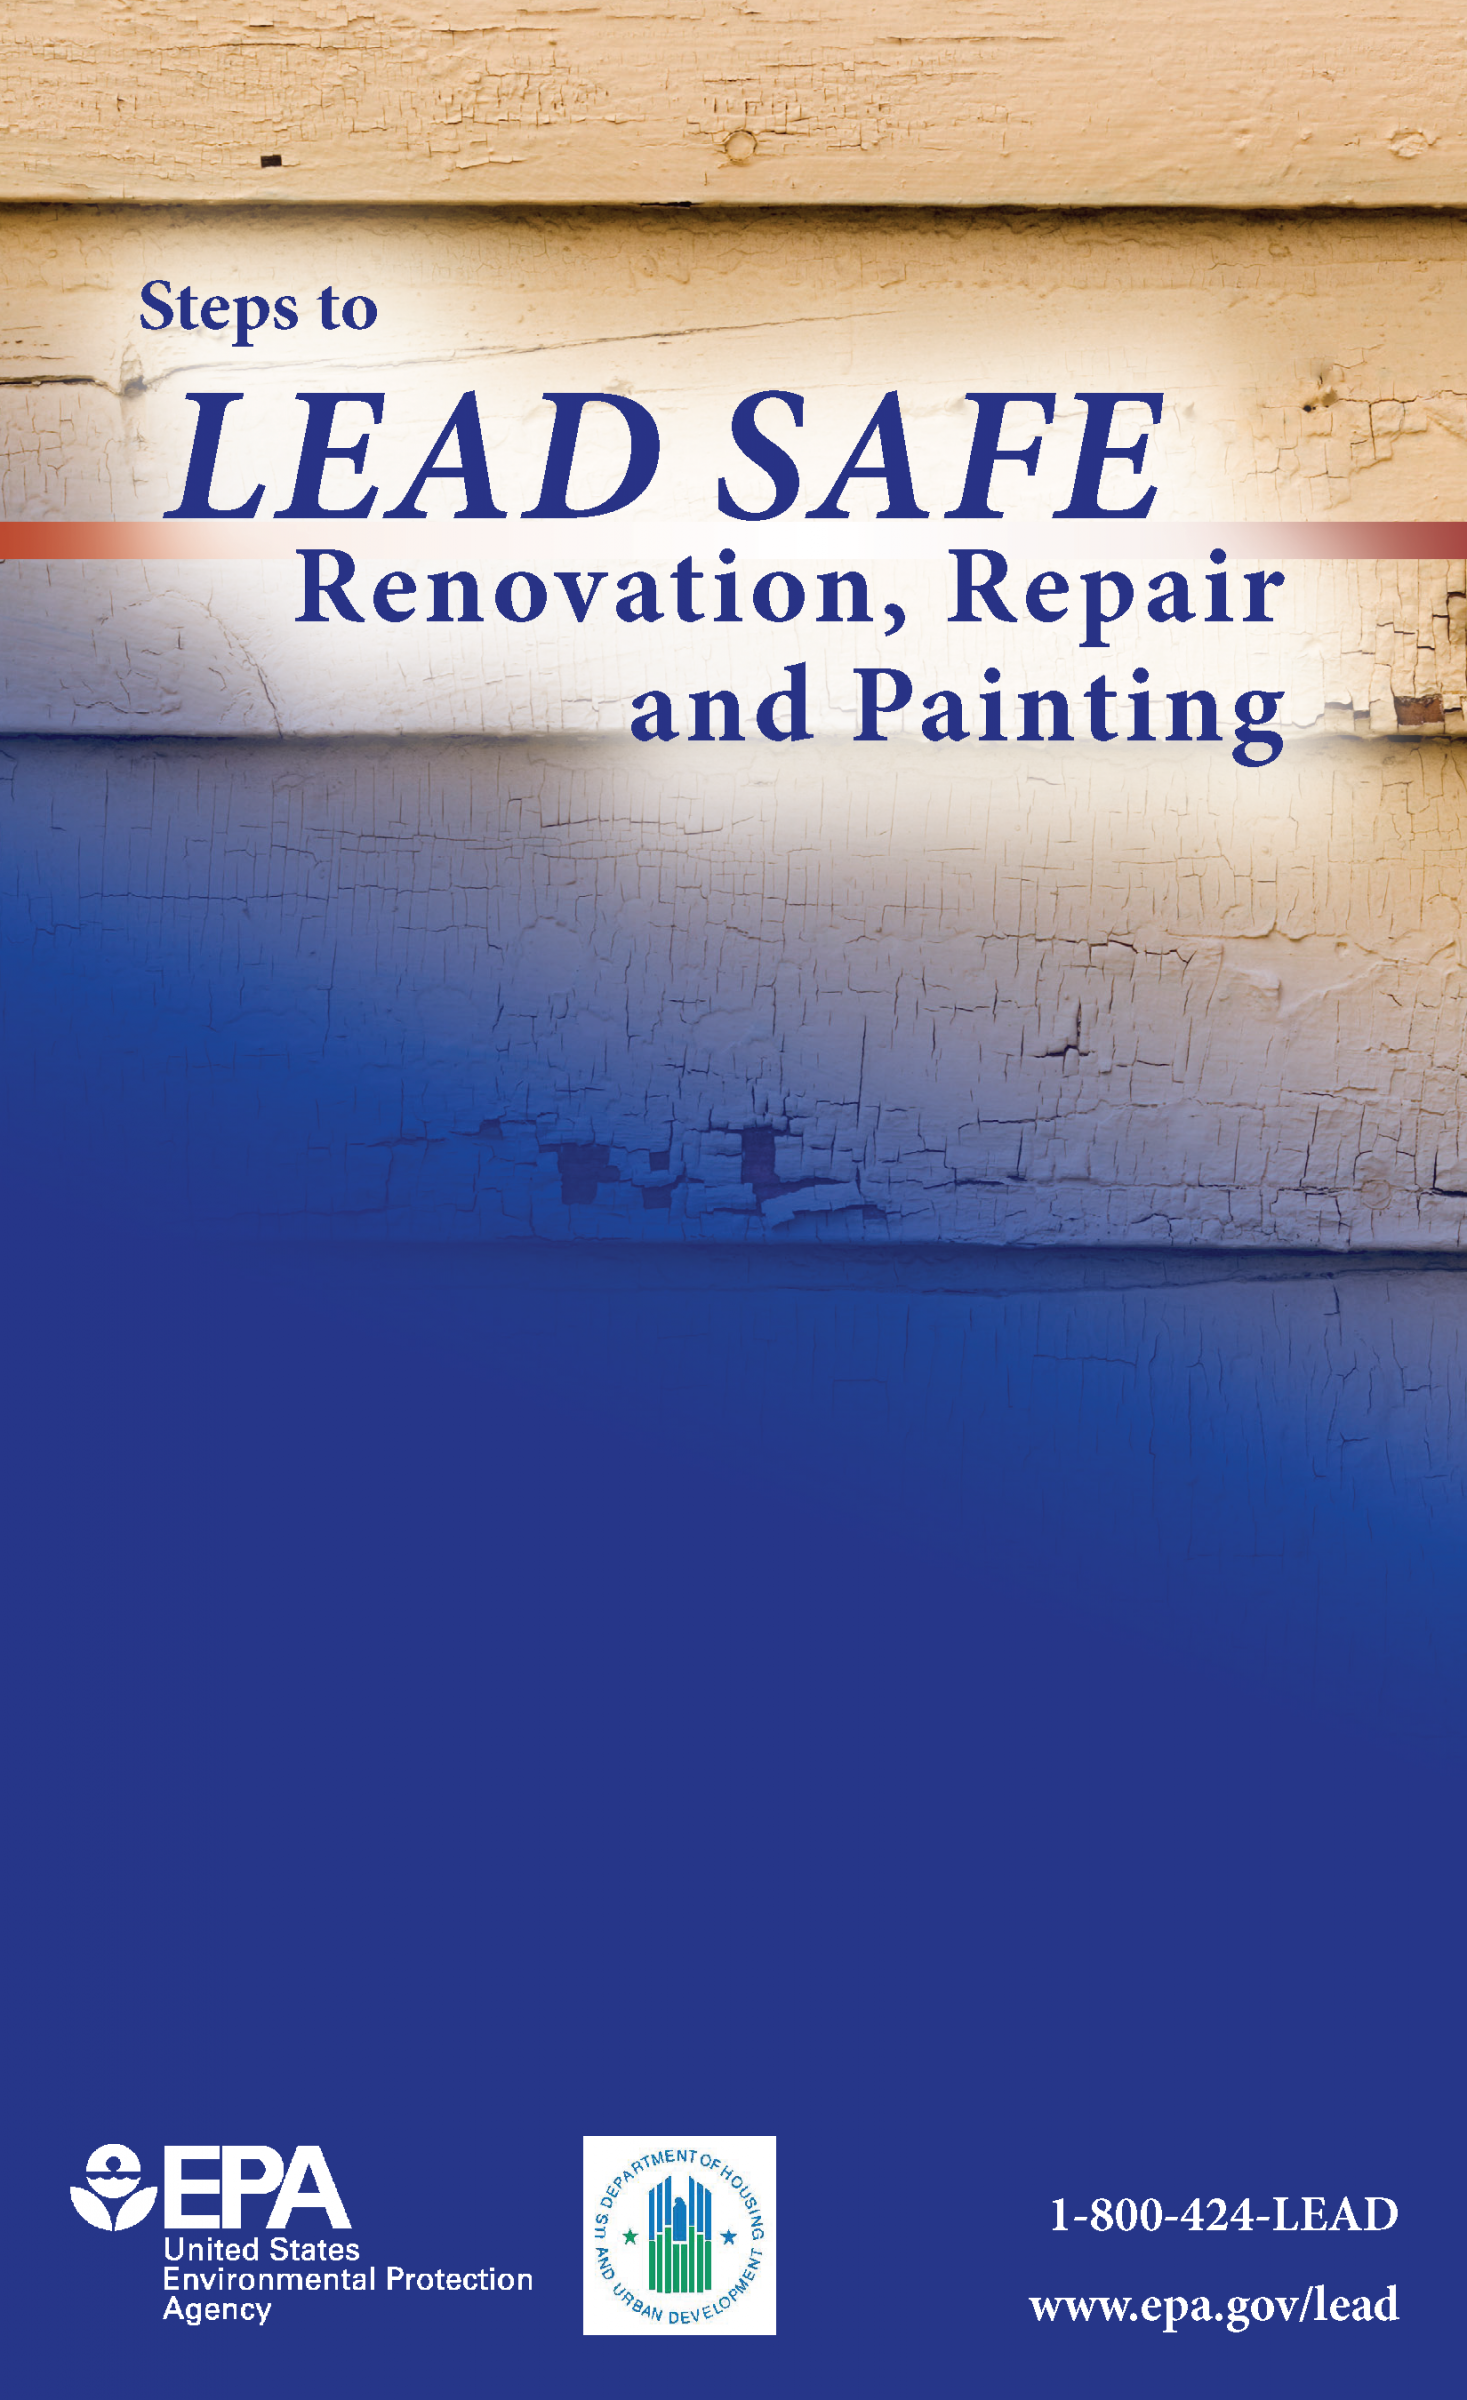 Steps to Lead Safe Renovation, Repair and Painting